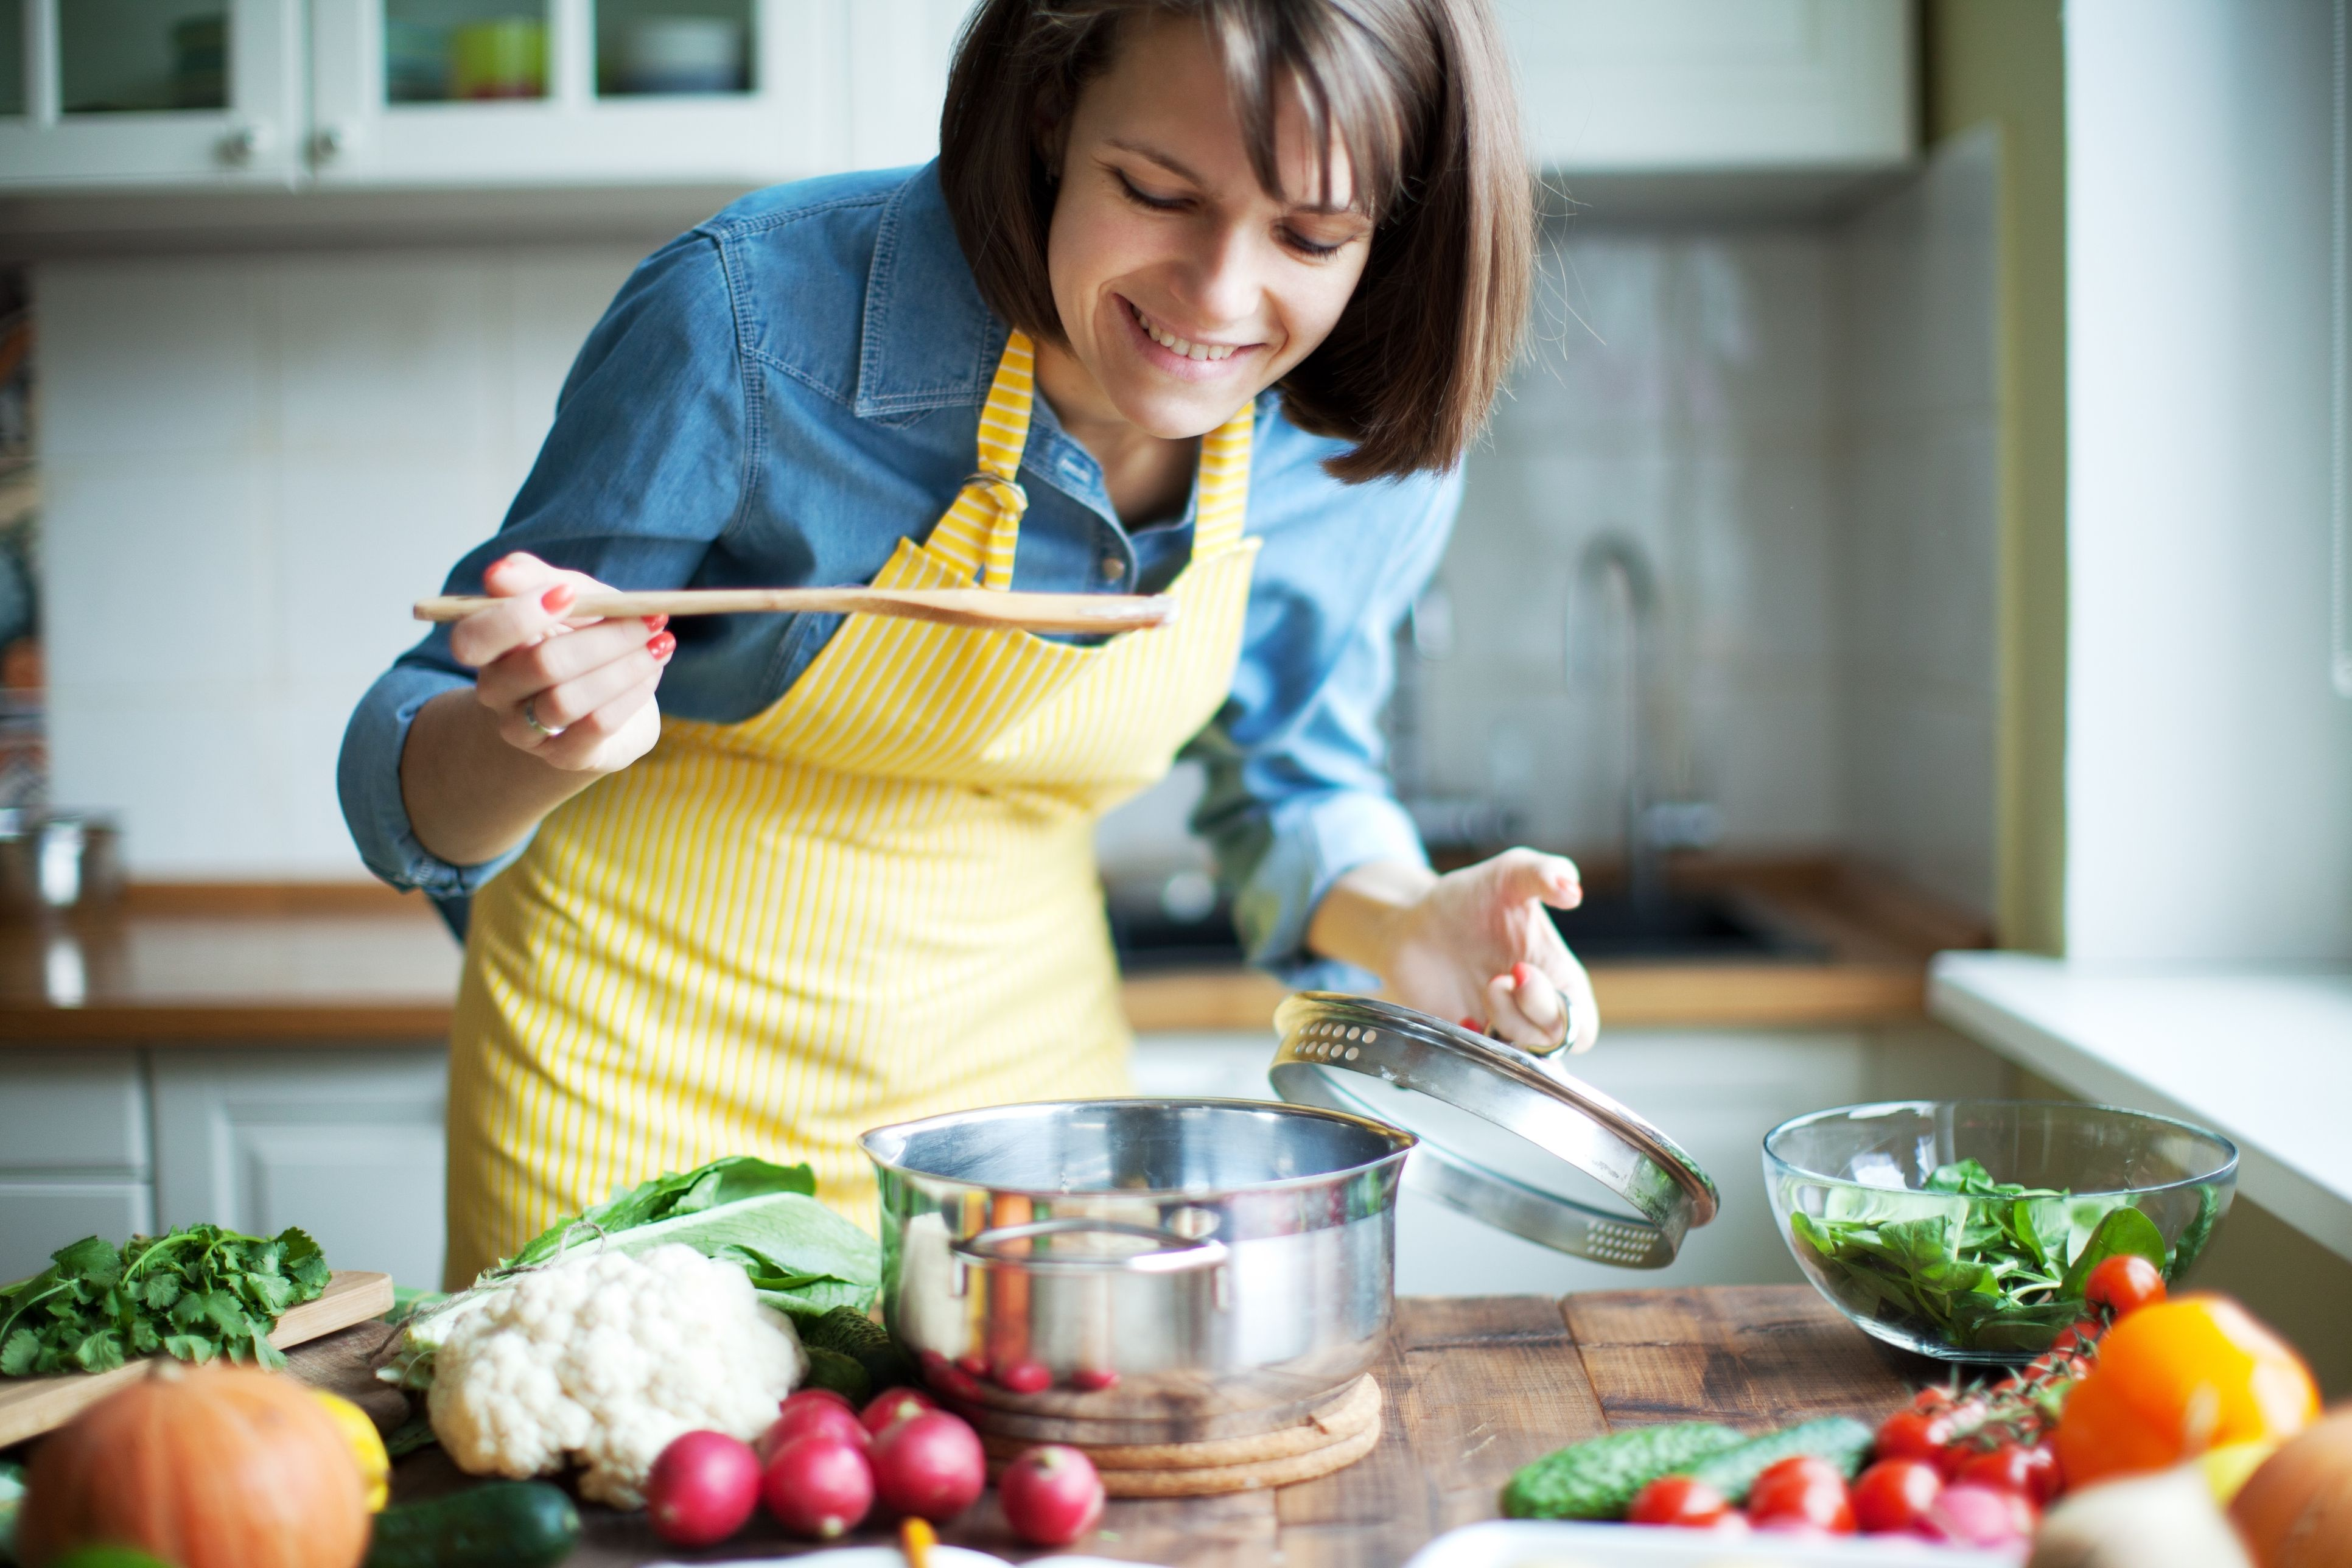 Discussion on this topic: The Top 9 Tips Nutritionists Give Their , the-top-9-tips-nutritionists-give-their/